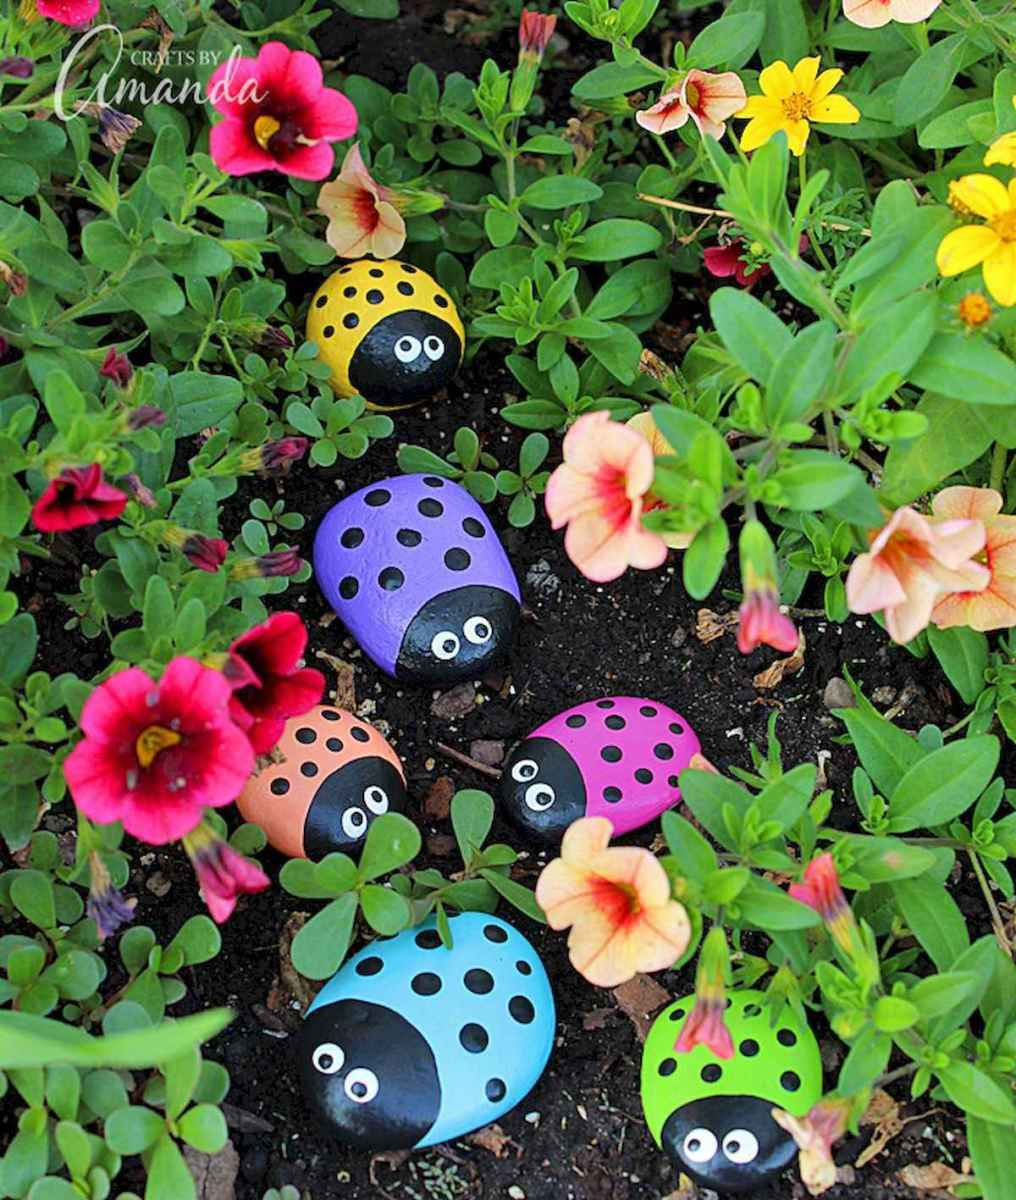 40 diy fun garden ideas decorations and makeover for summer (22)